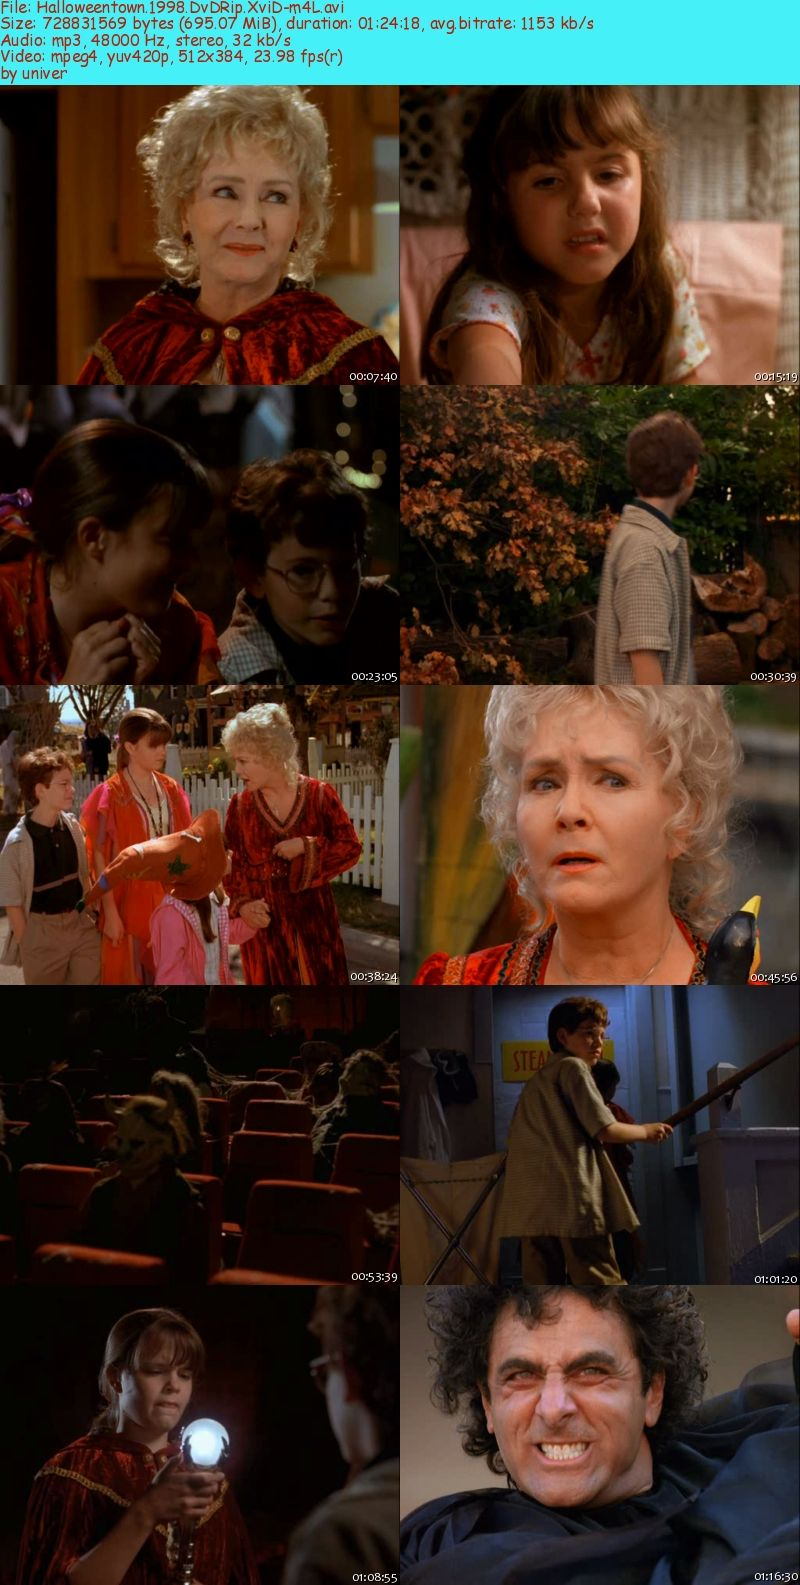 Halloweentown 1998 Movie marnie dylan and sophie piper